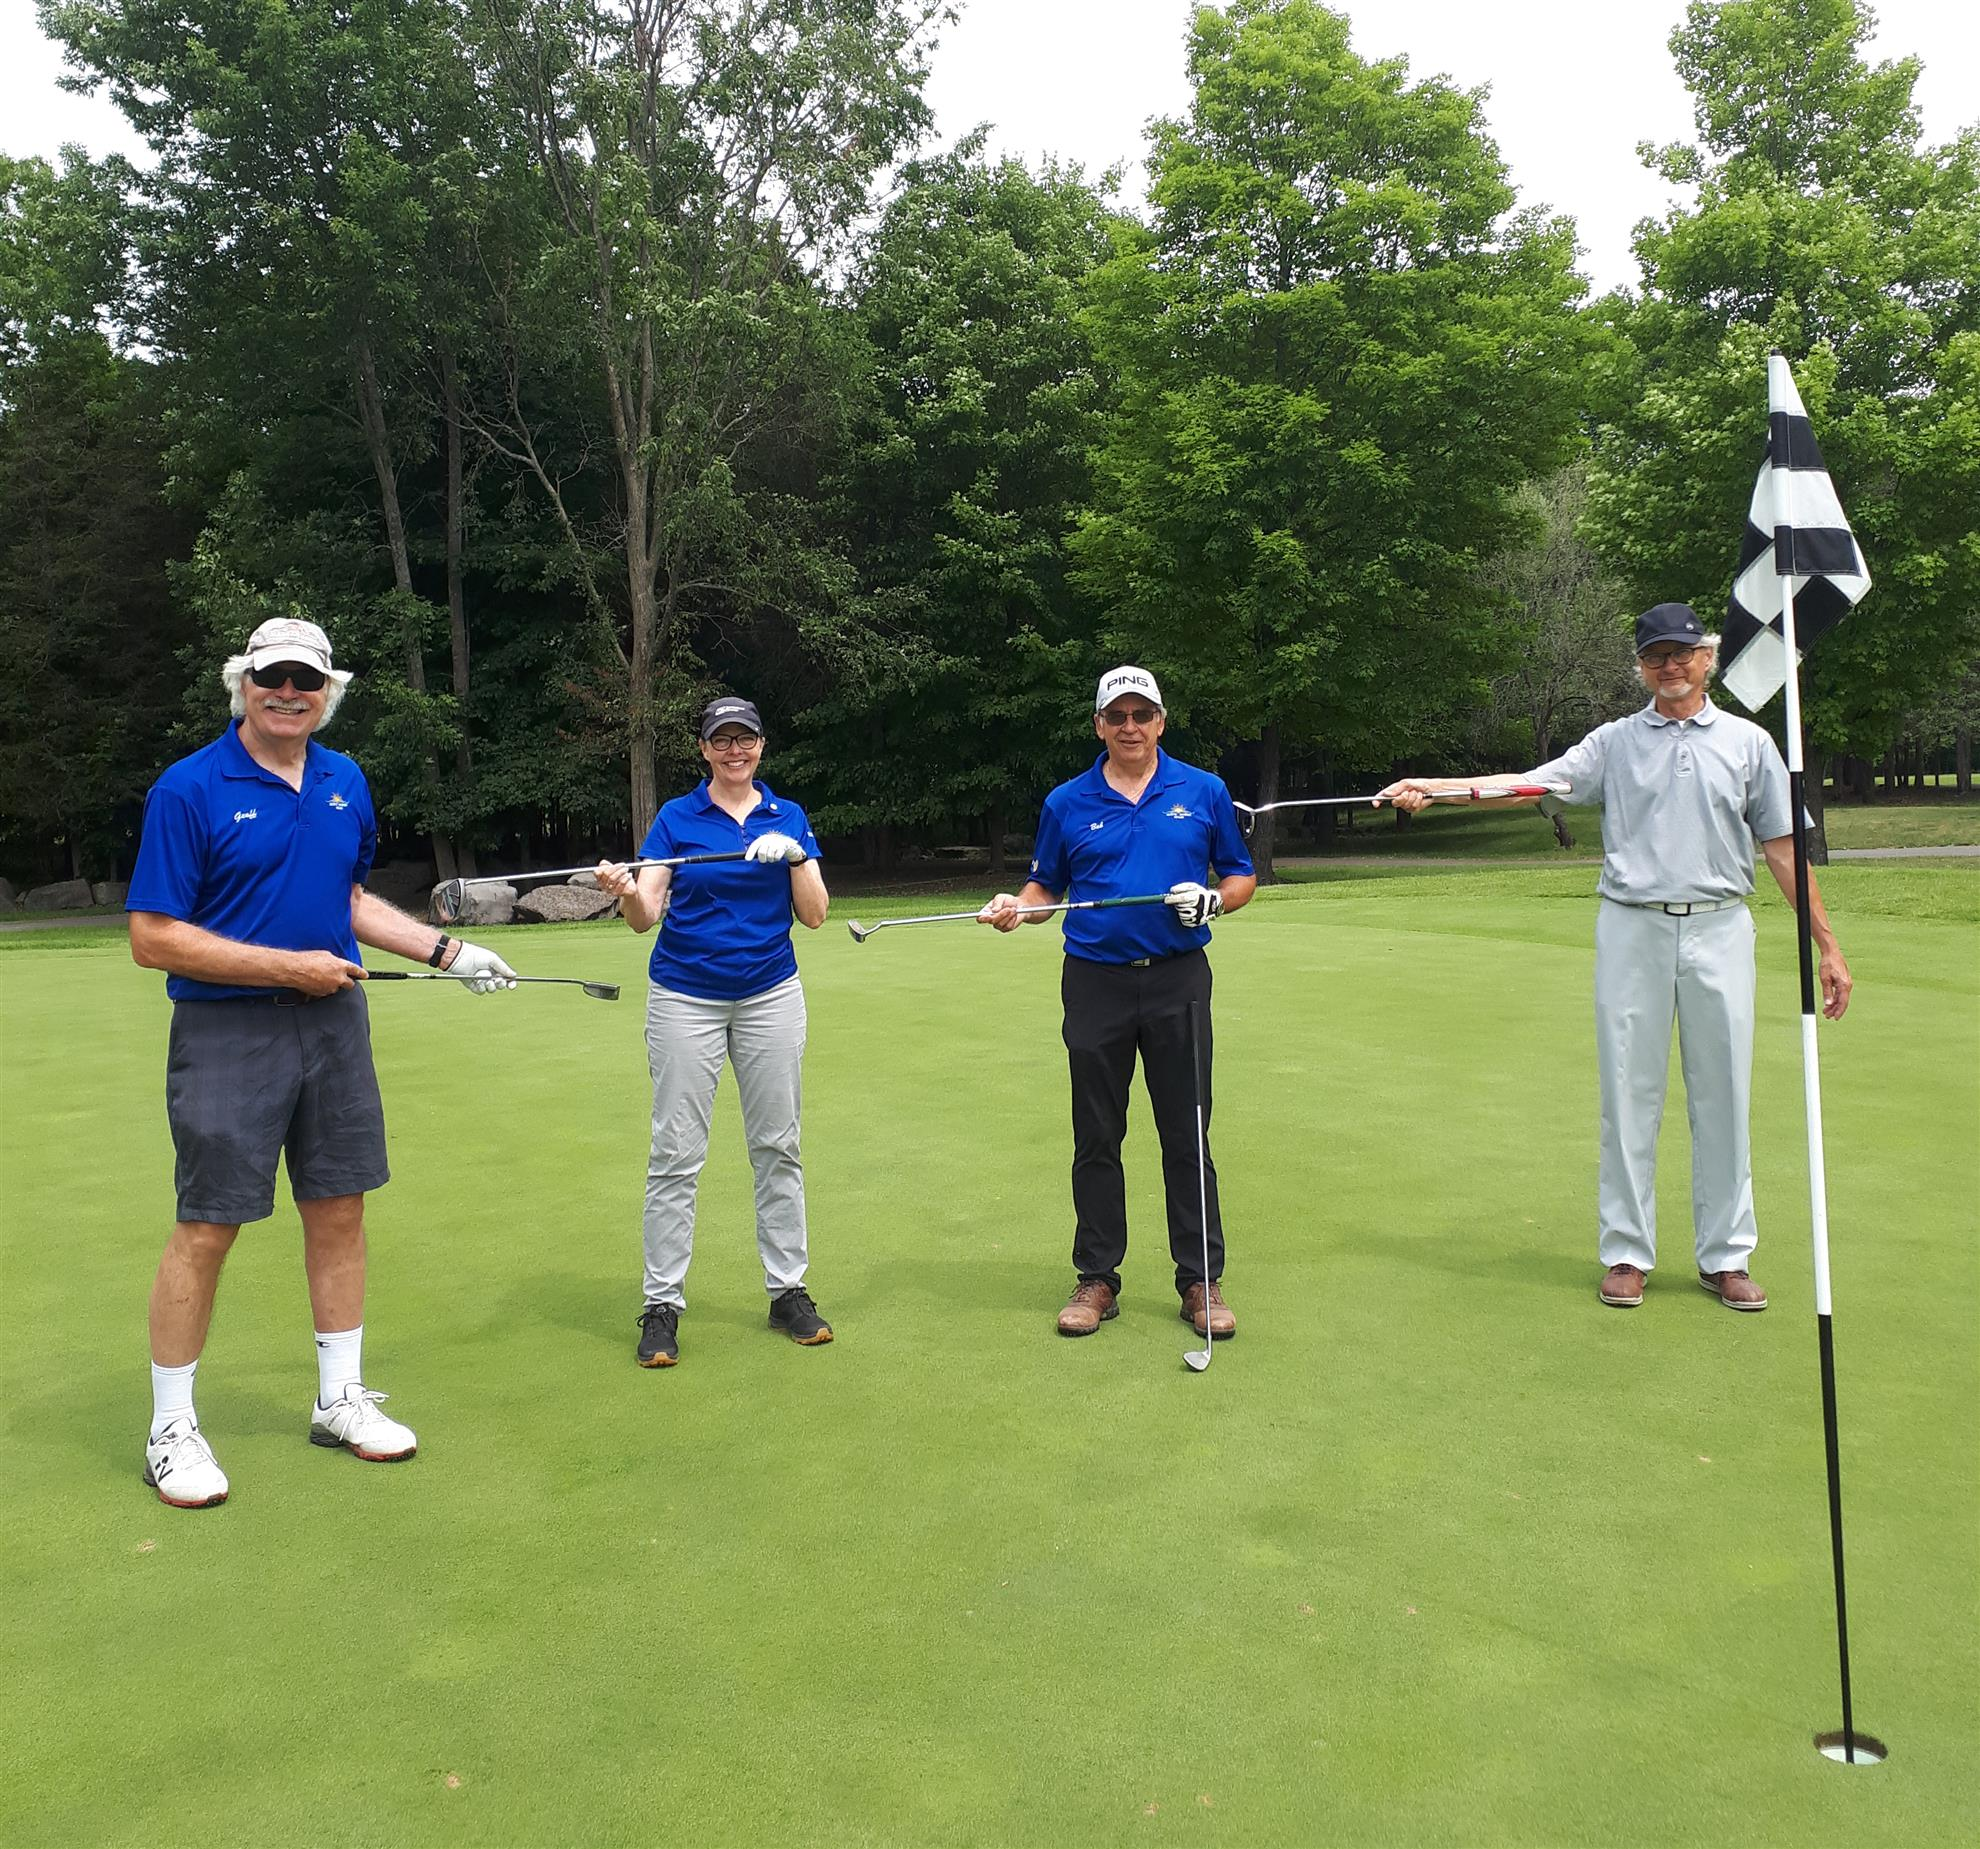 The Rotary Club of Quinte Sunrise golf team practicing golf course social distancing